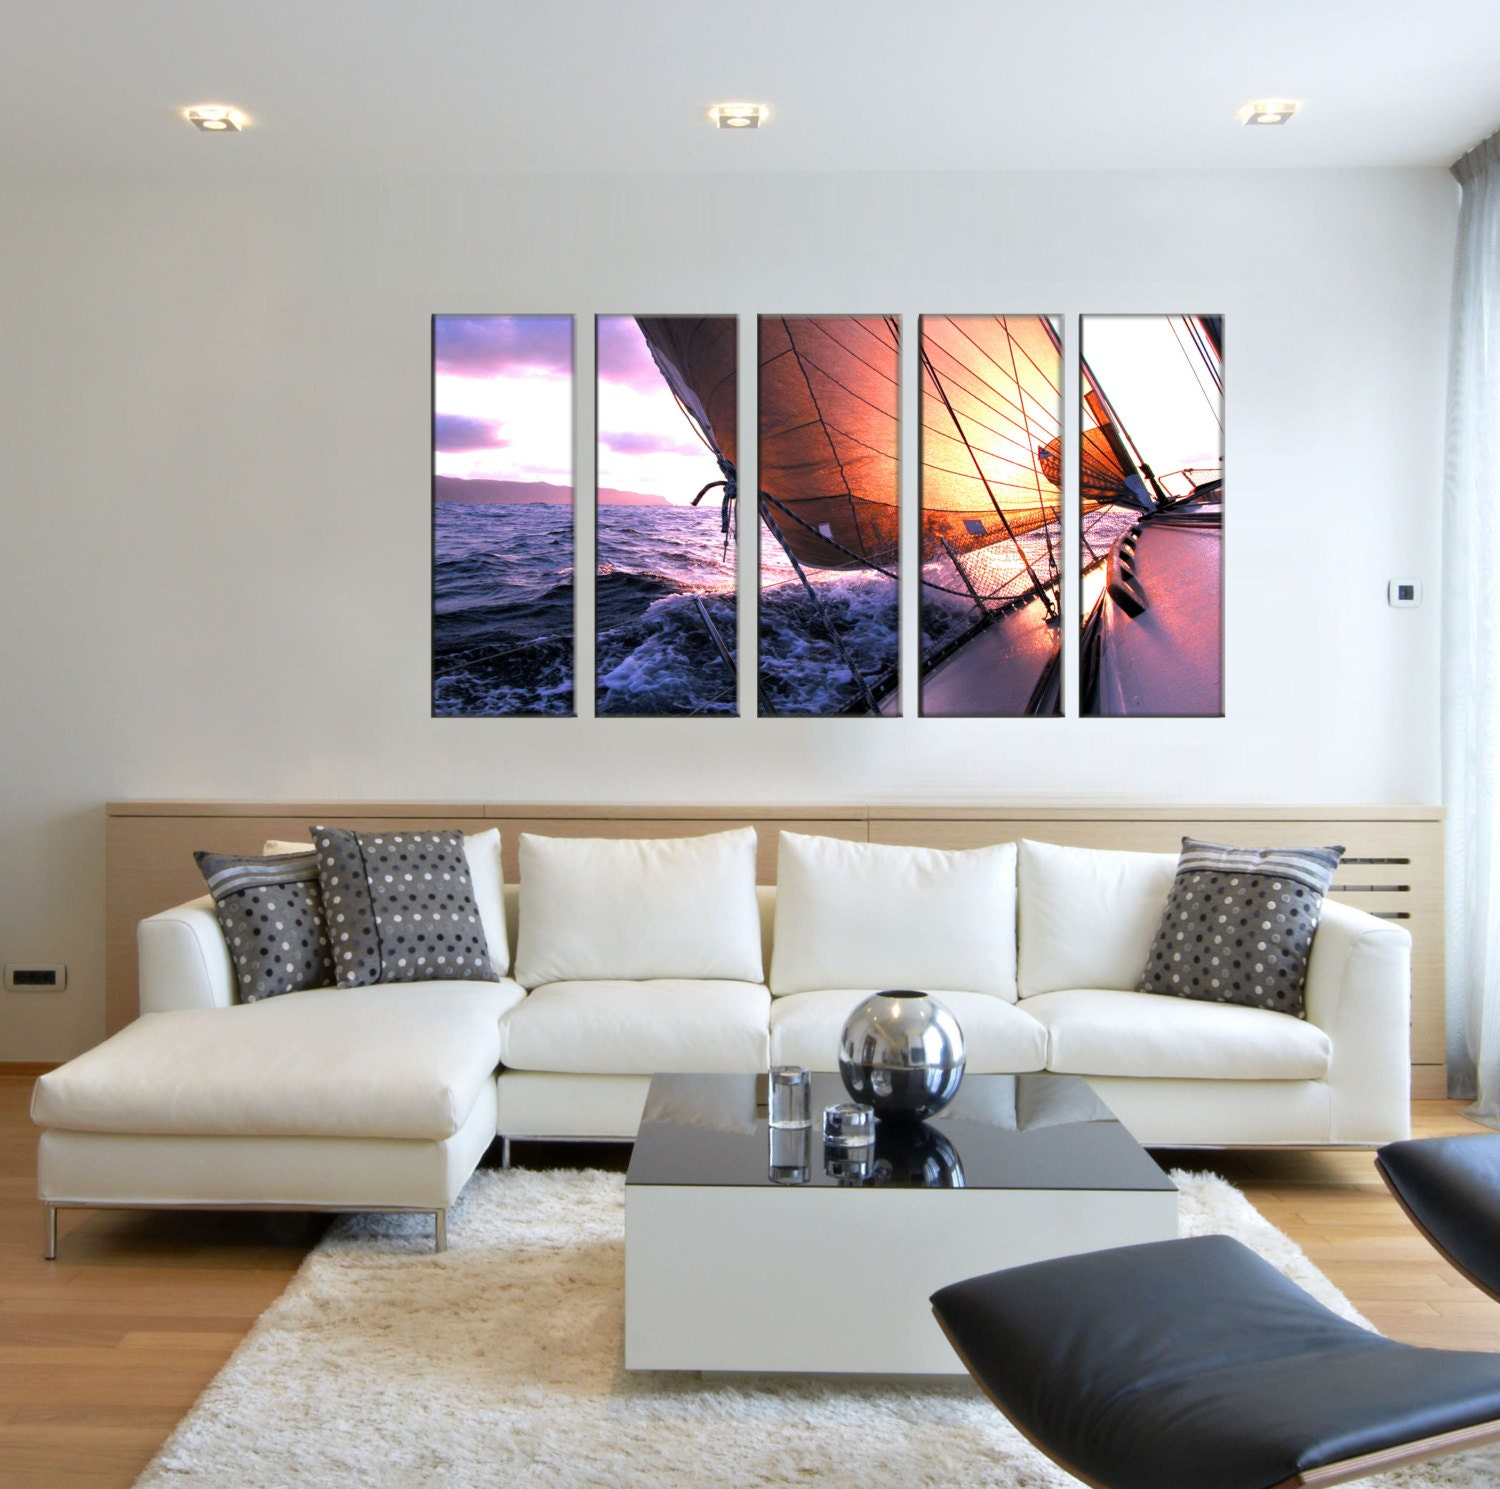 1 & Canvas Prints - Seascapes Wall Art - Home Interiors Wall Decor ...